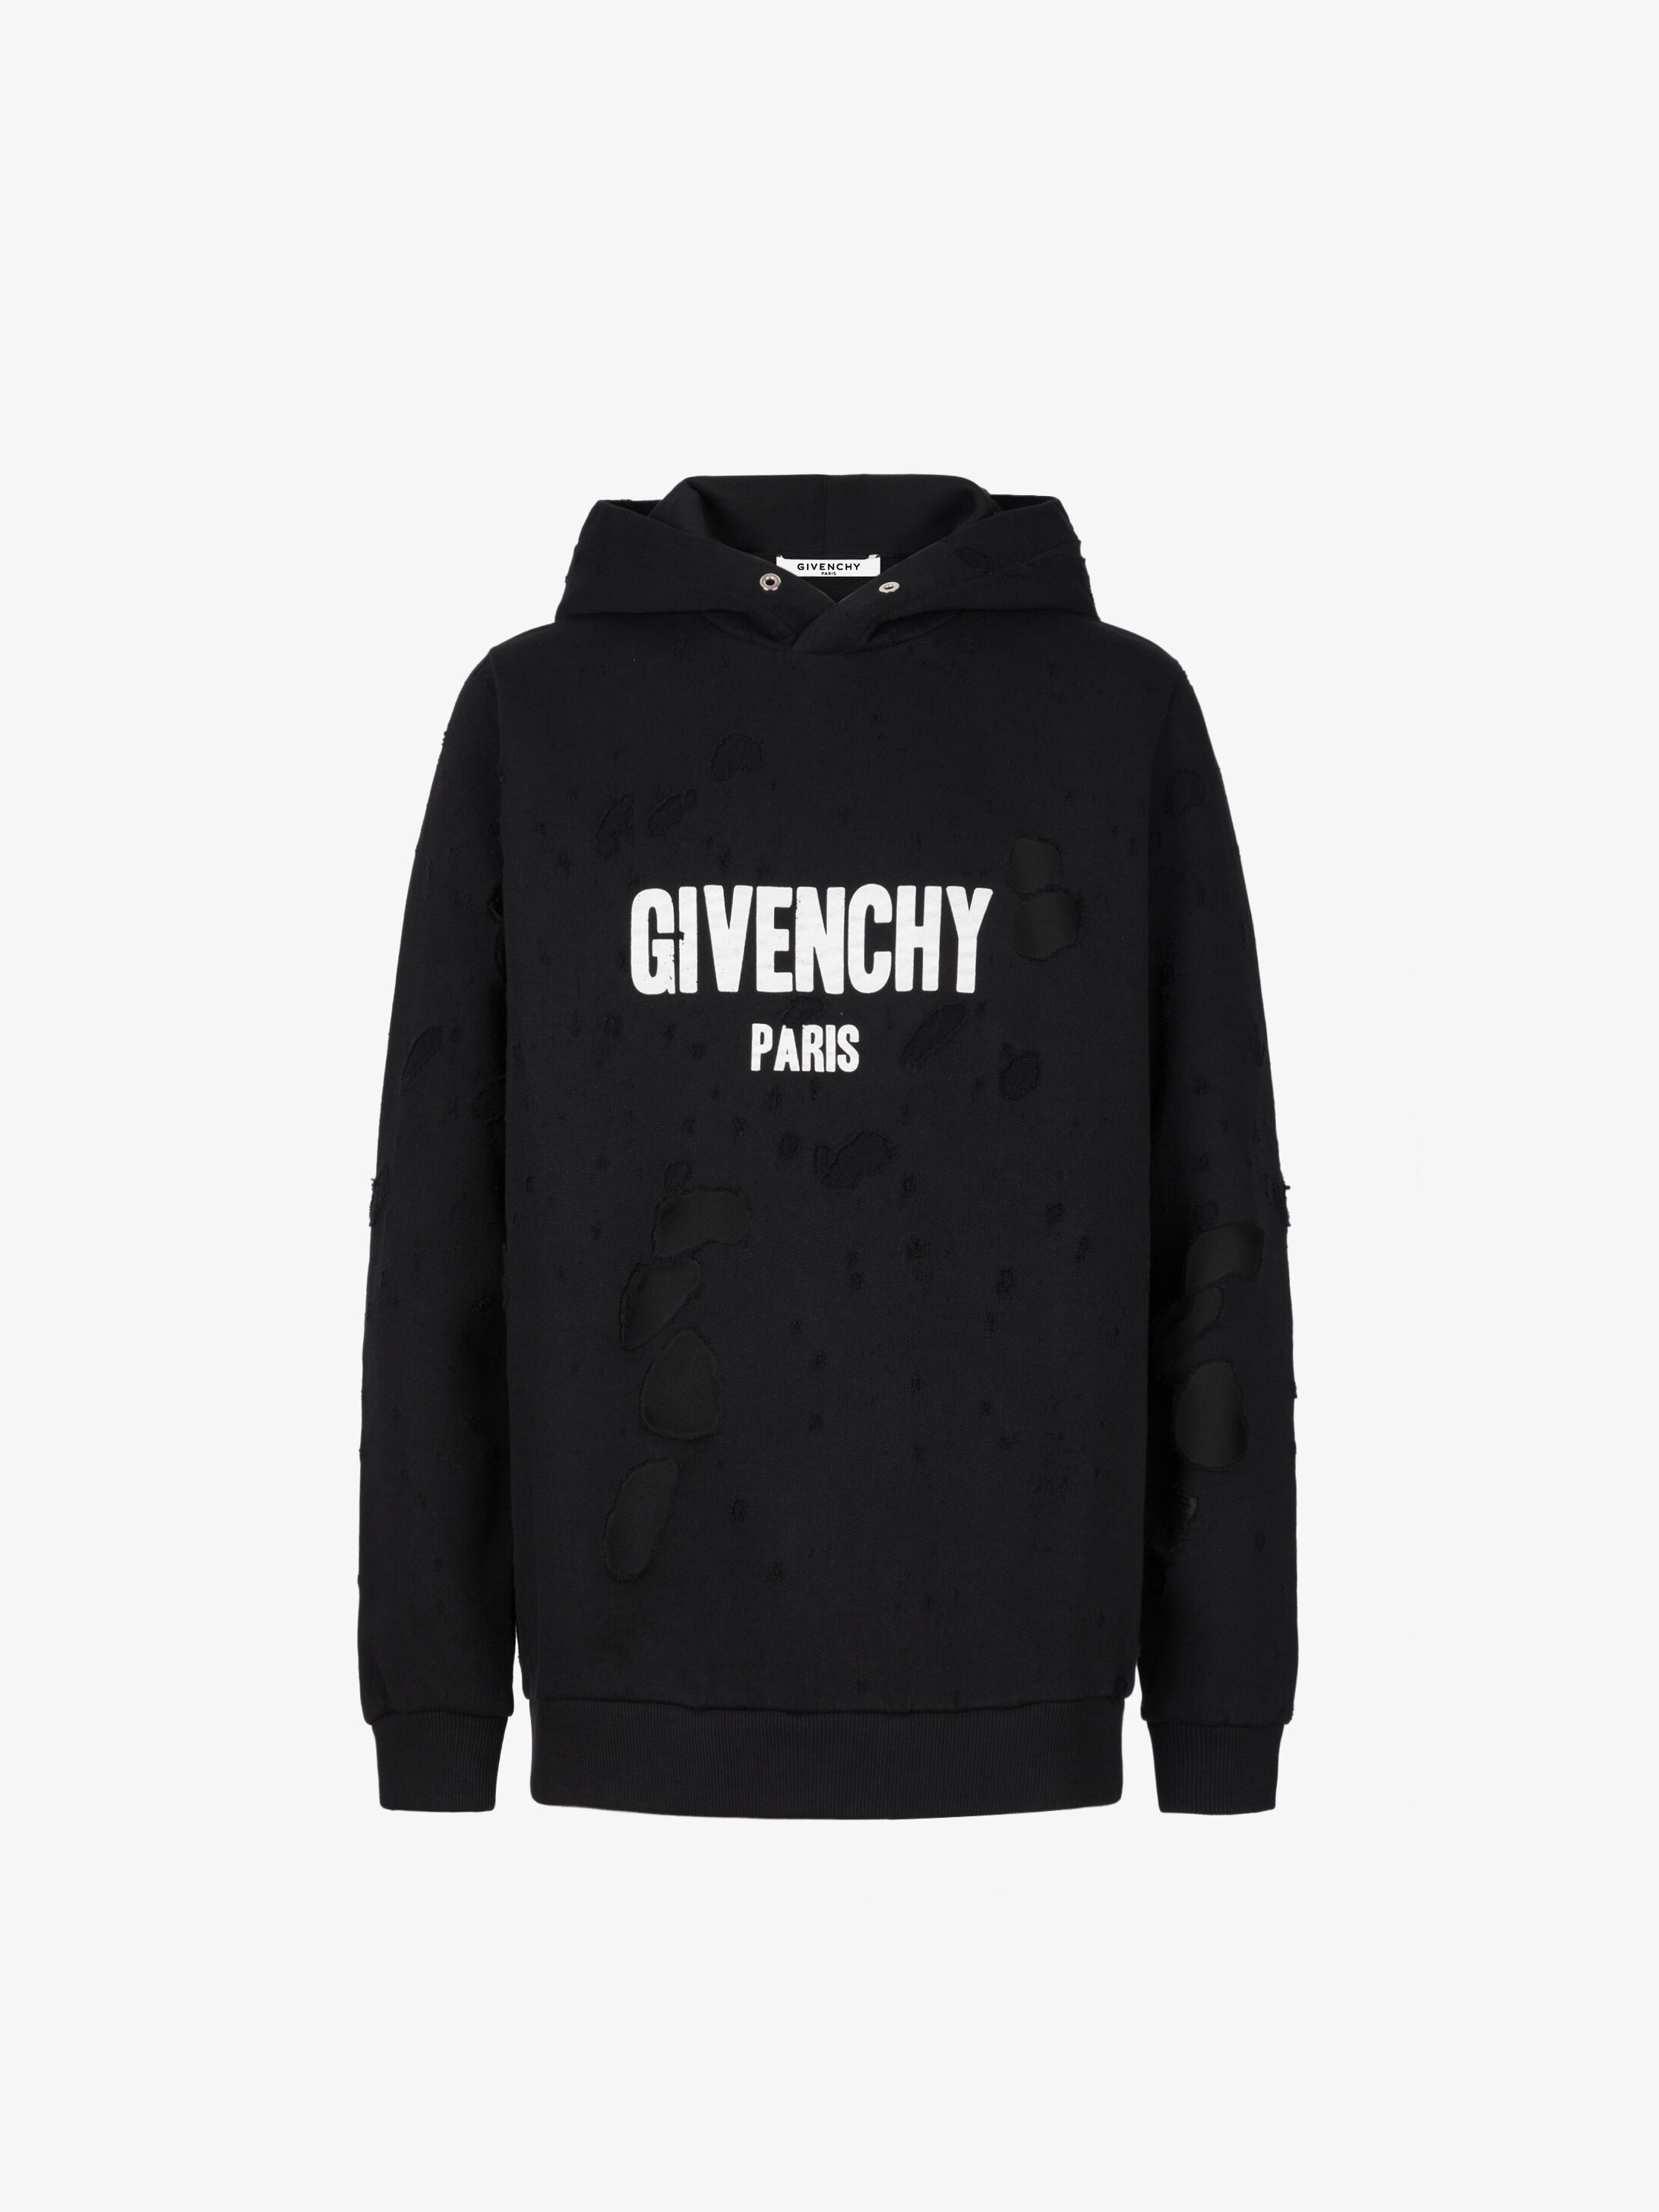 cd2cda33cad9 Men's Sweatshirts collection by Givenchy. | GIVENCHY Paris